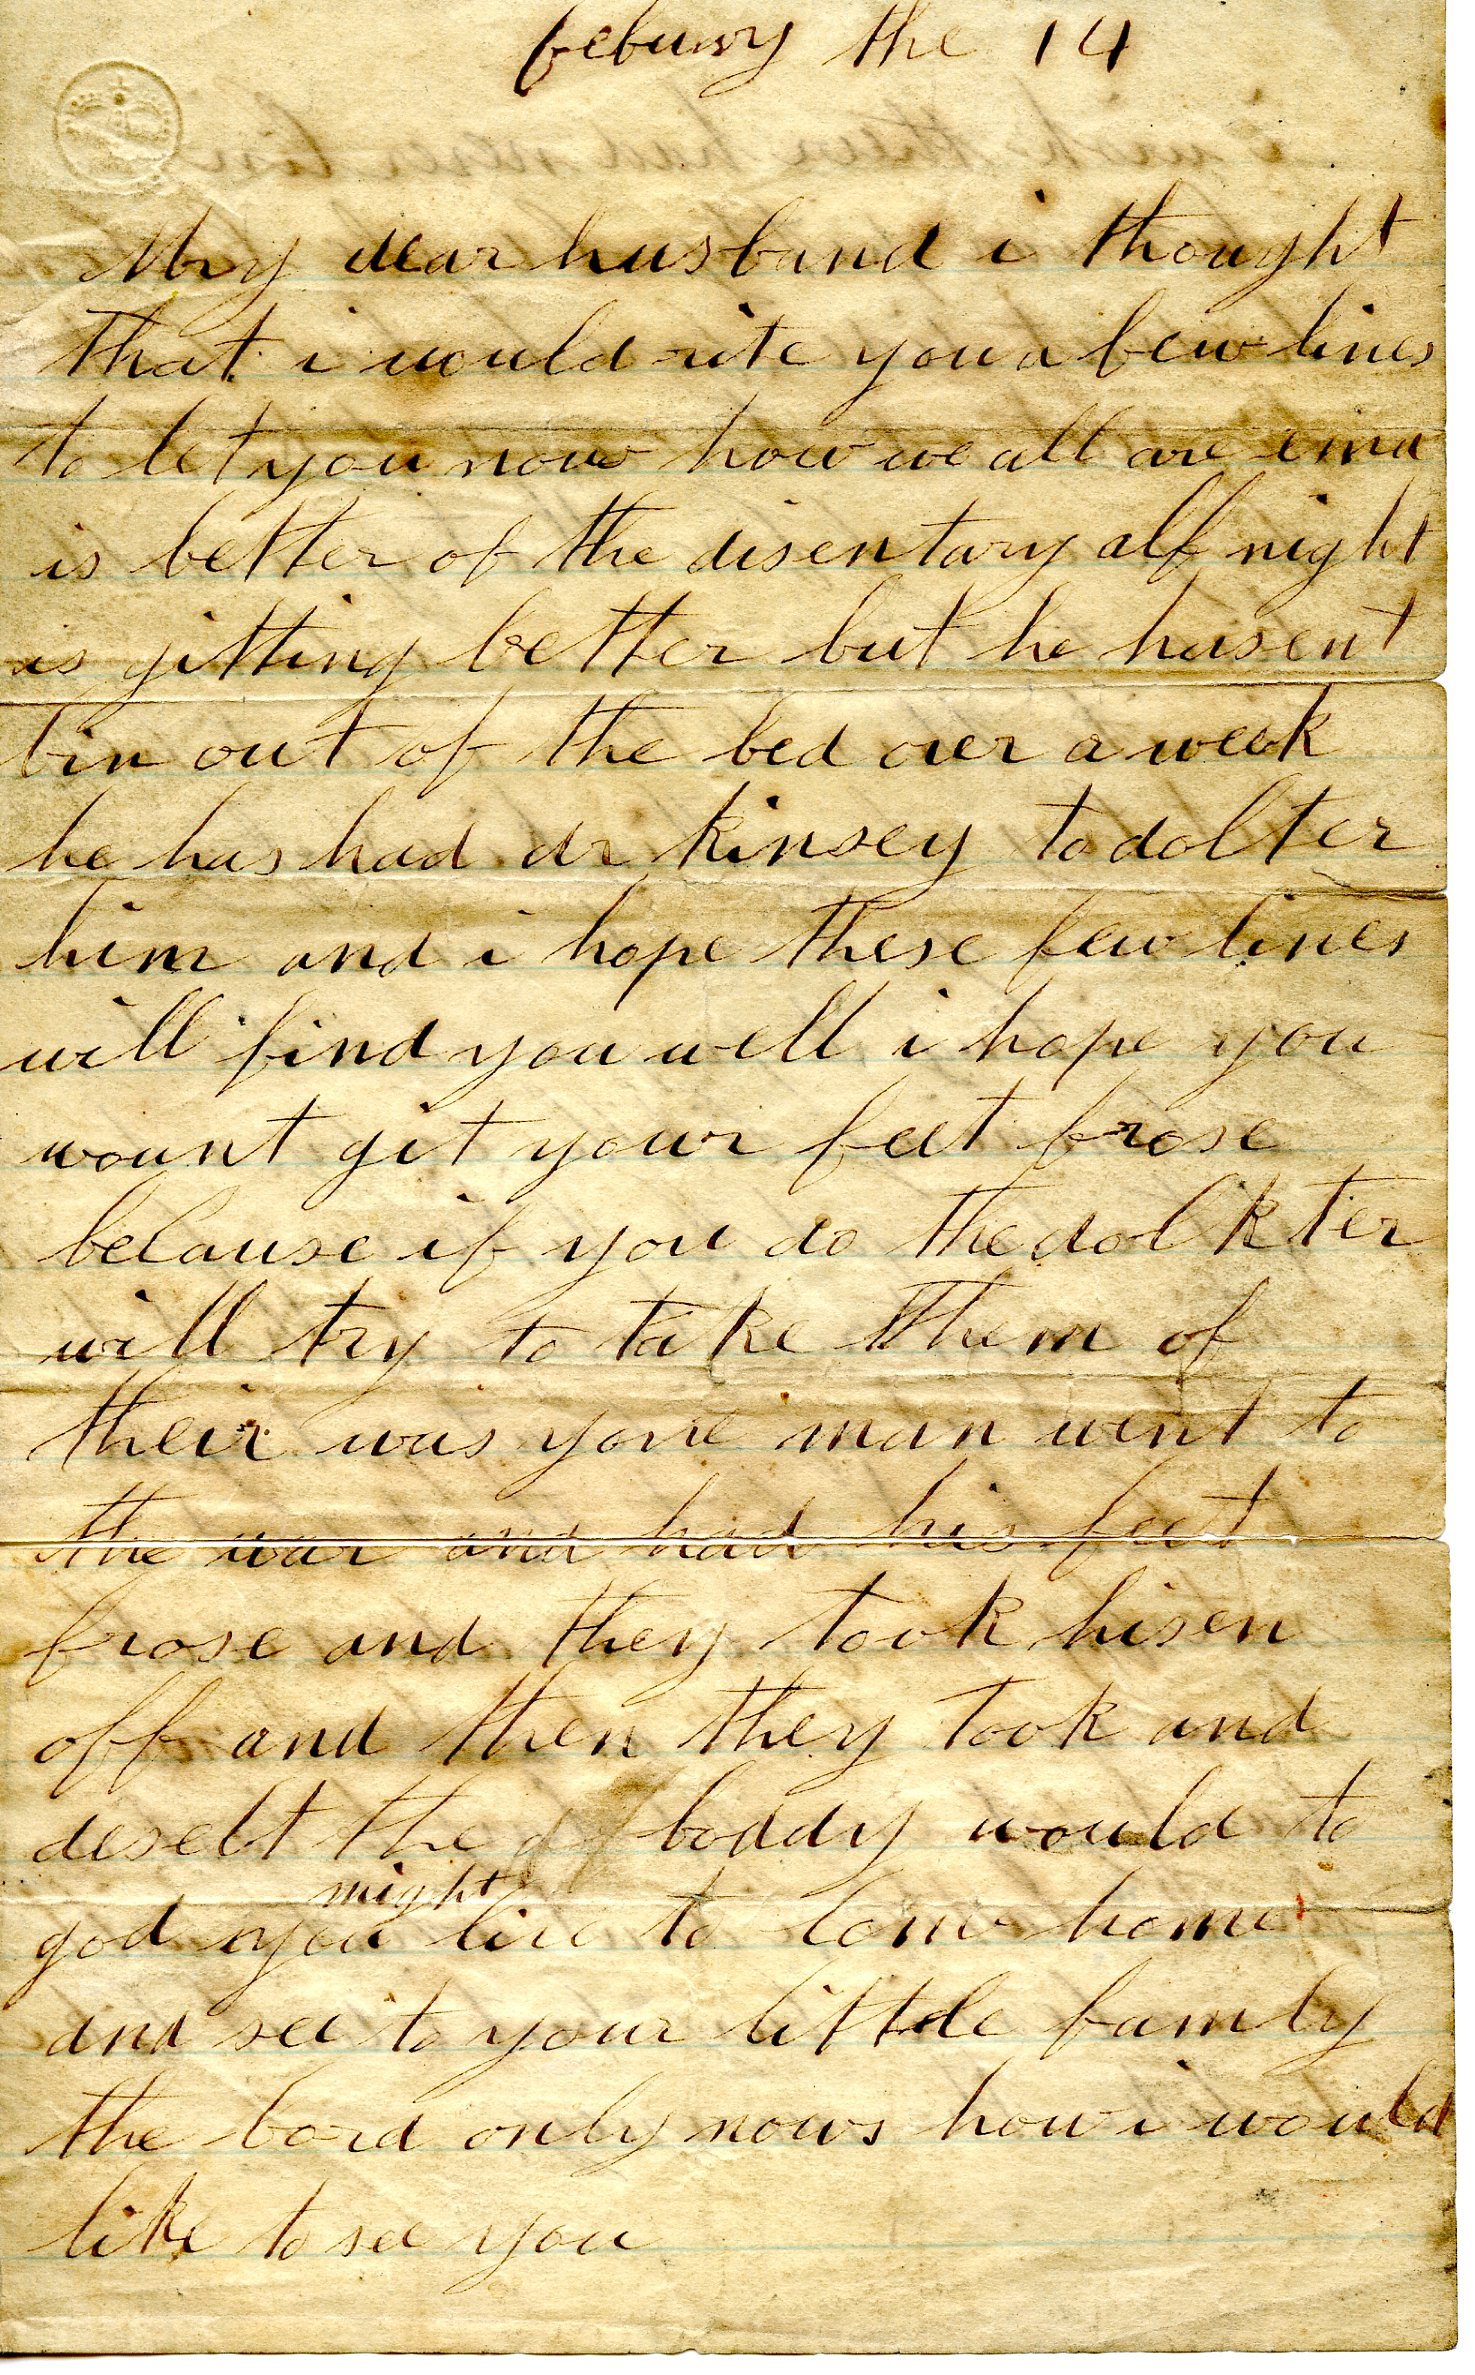 a letter from the civil war found on the battlefield